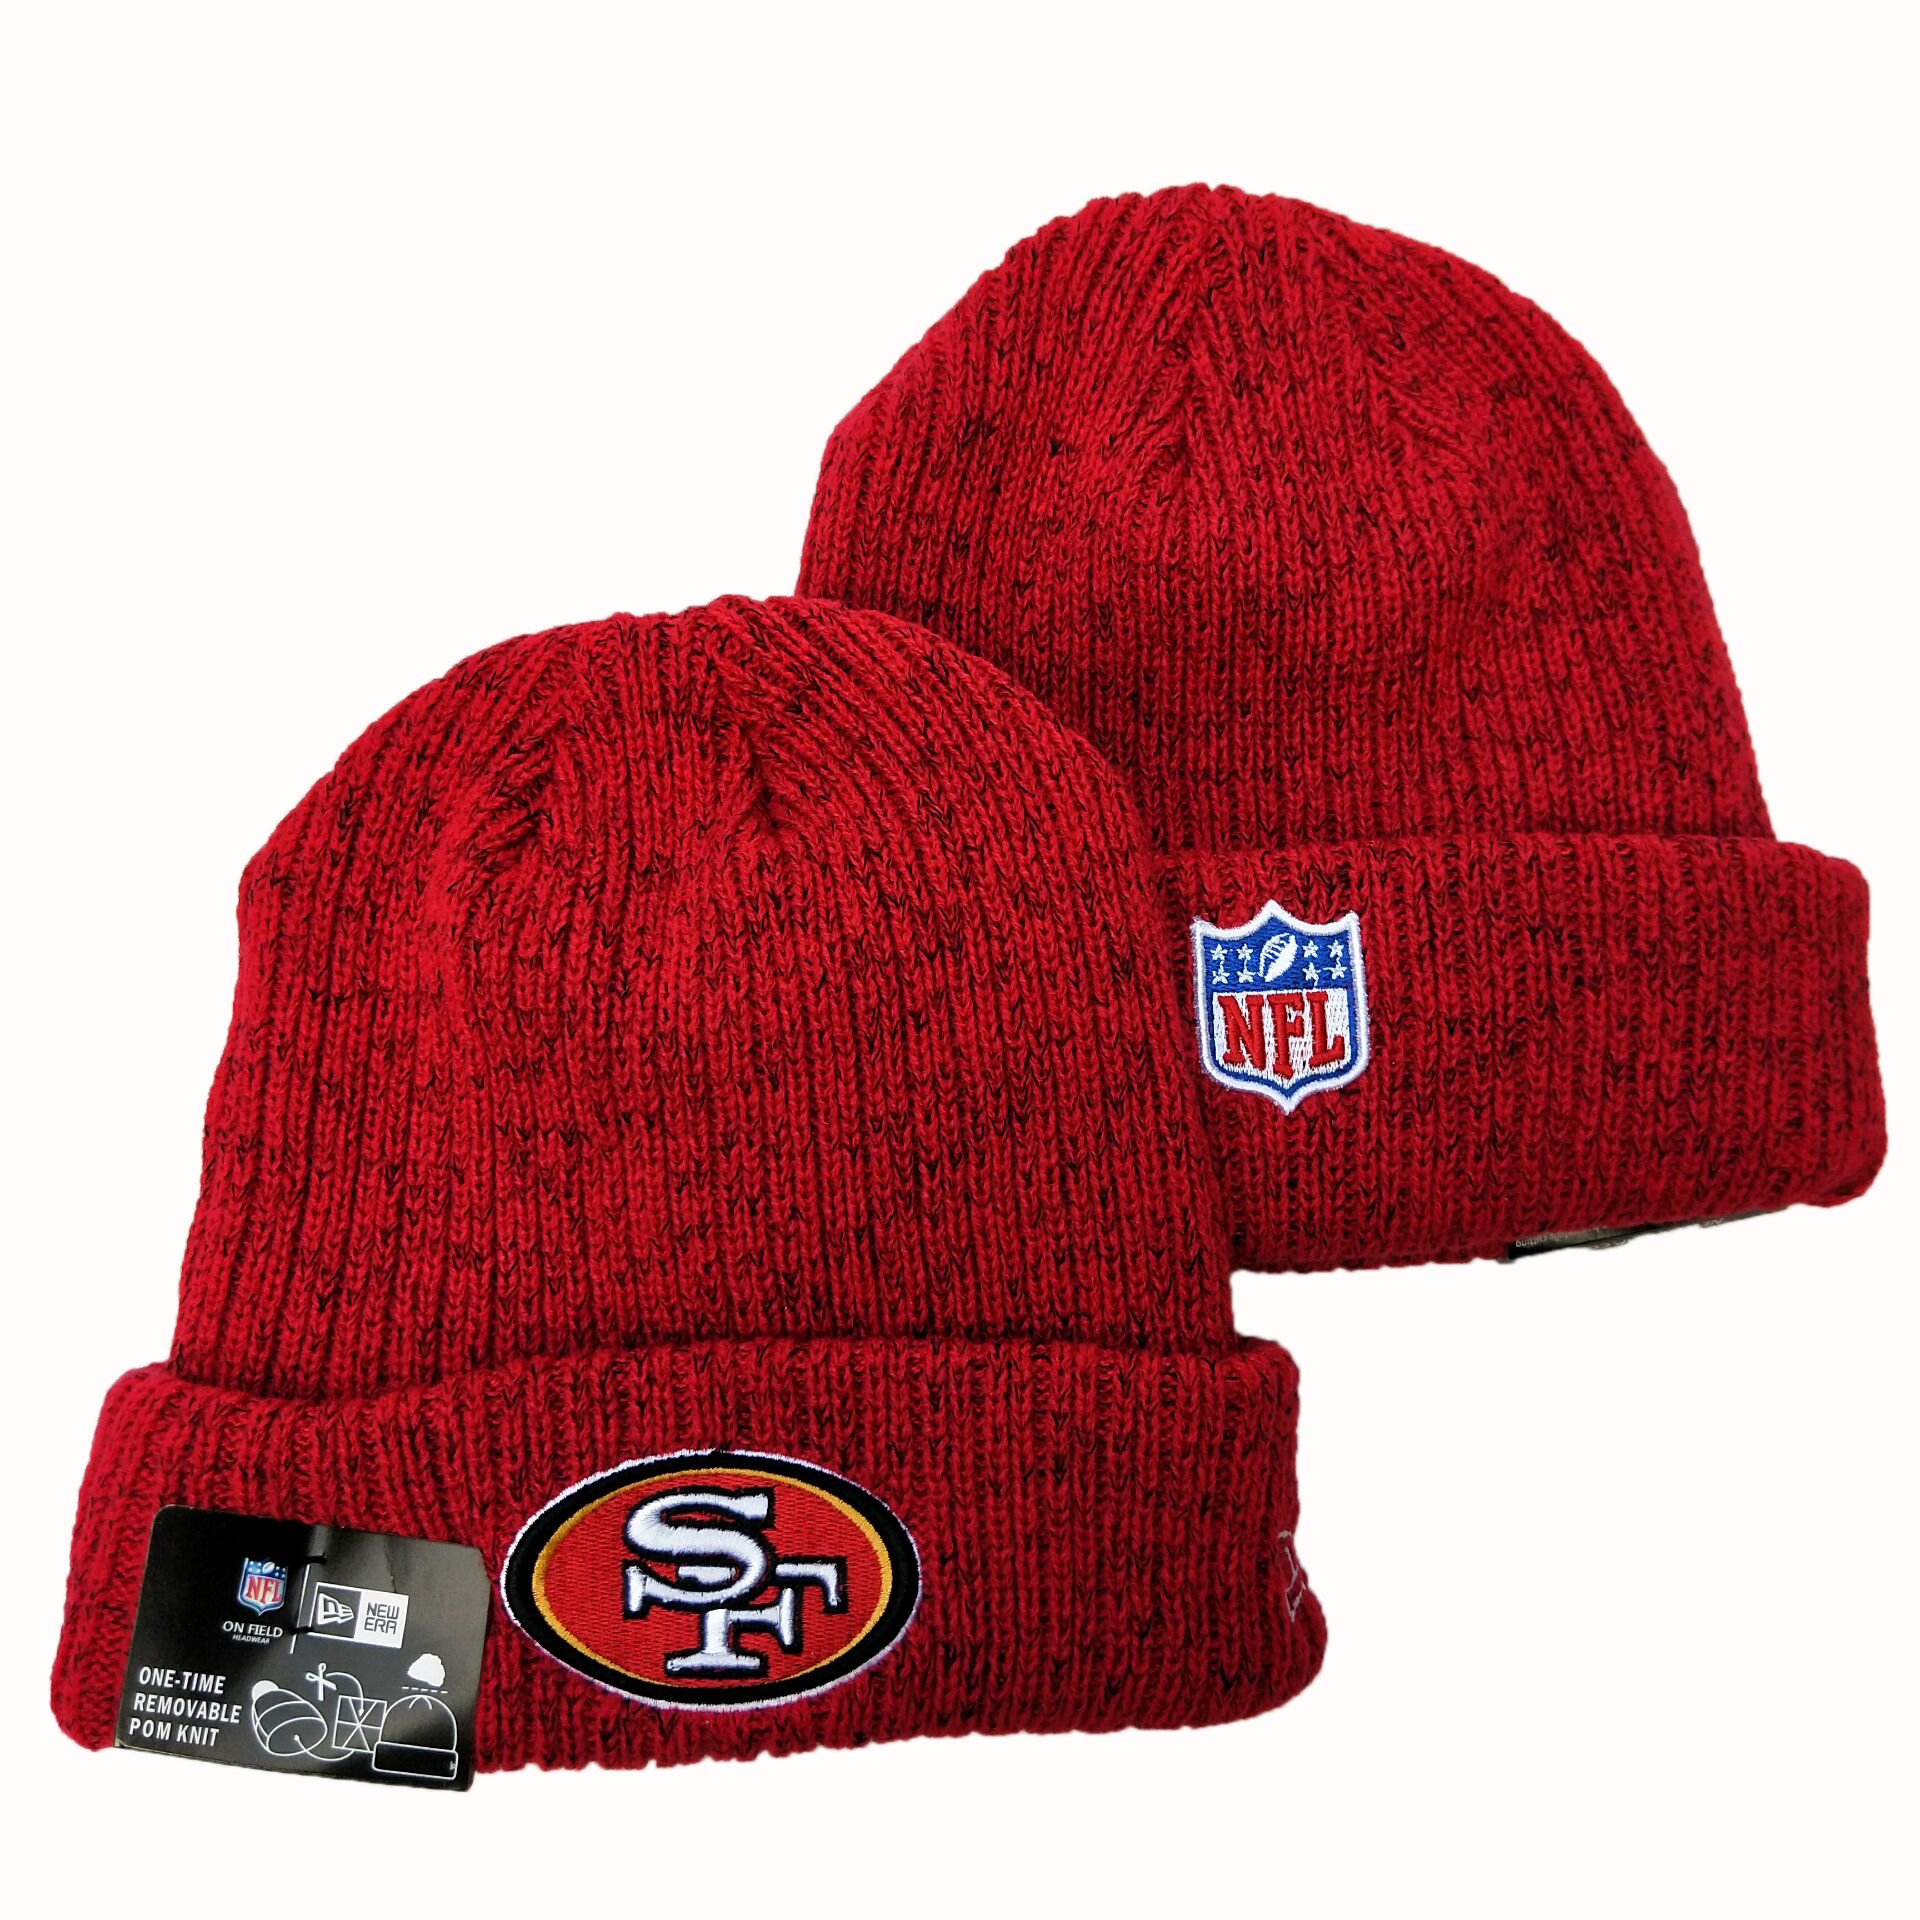 NFL San Francisco 49ers New Era 2019 Knit Hats 065